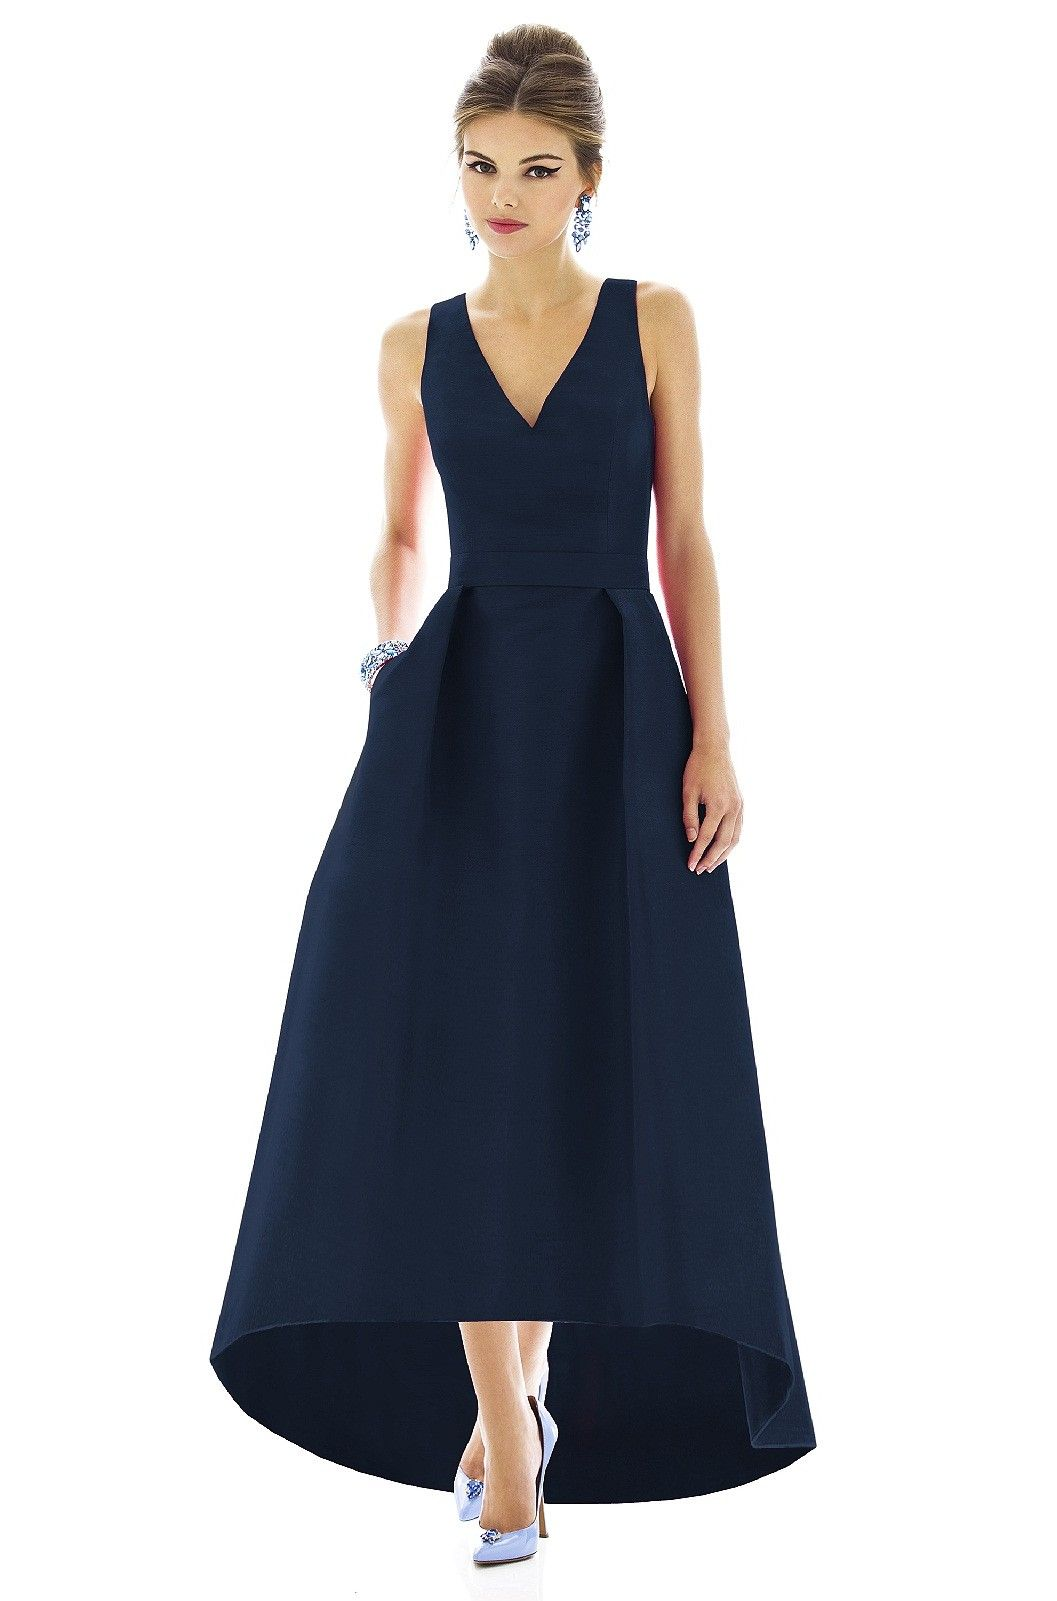 Alfred sung d587 bridesmaid dress in navy blue the big day alfred sung d587 bridesmaid dress in navy blue ombrellifo Gallery